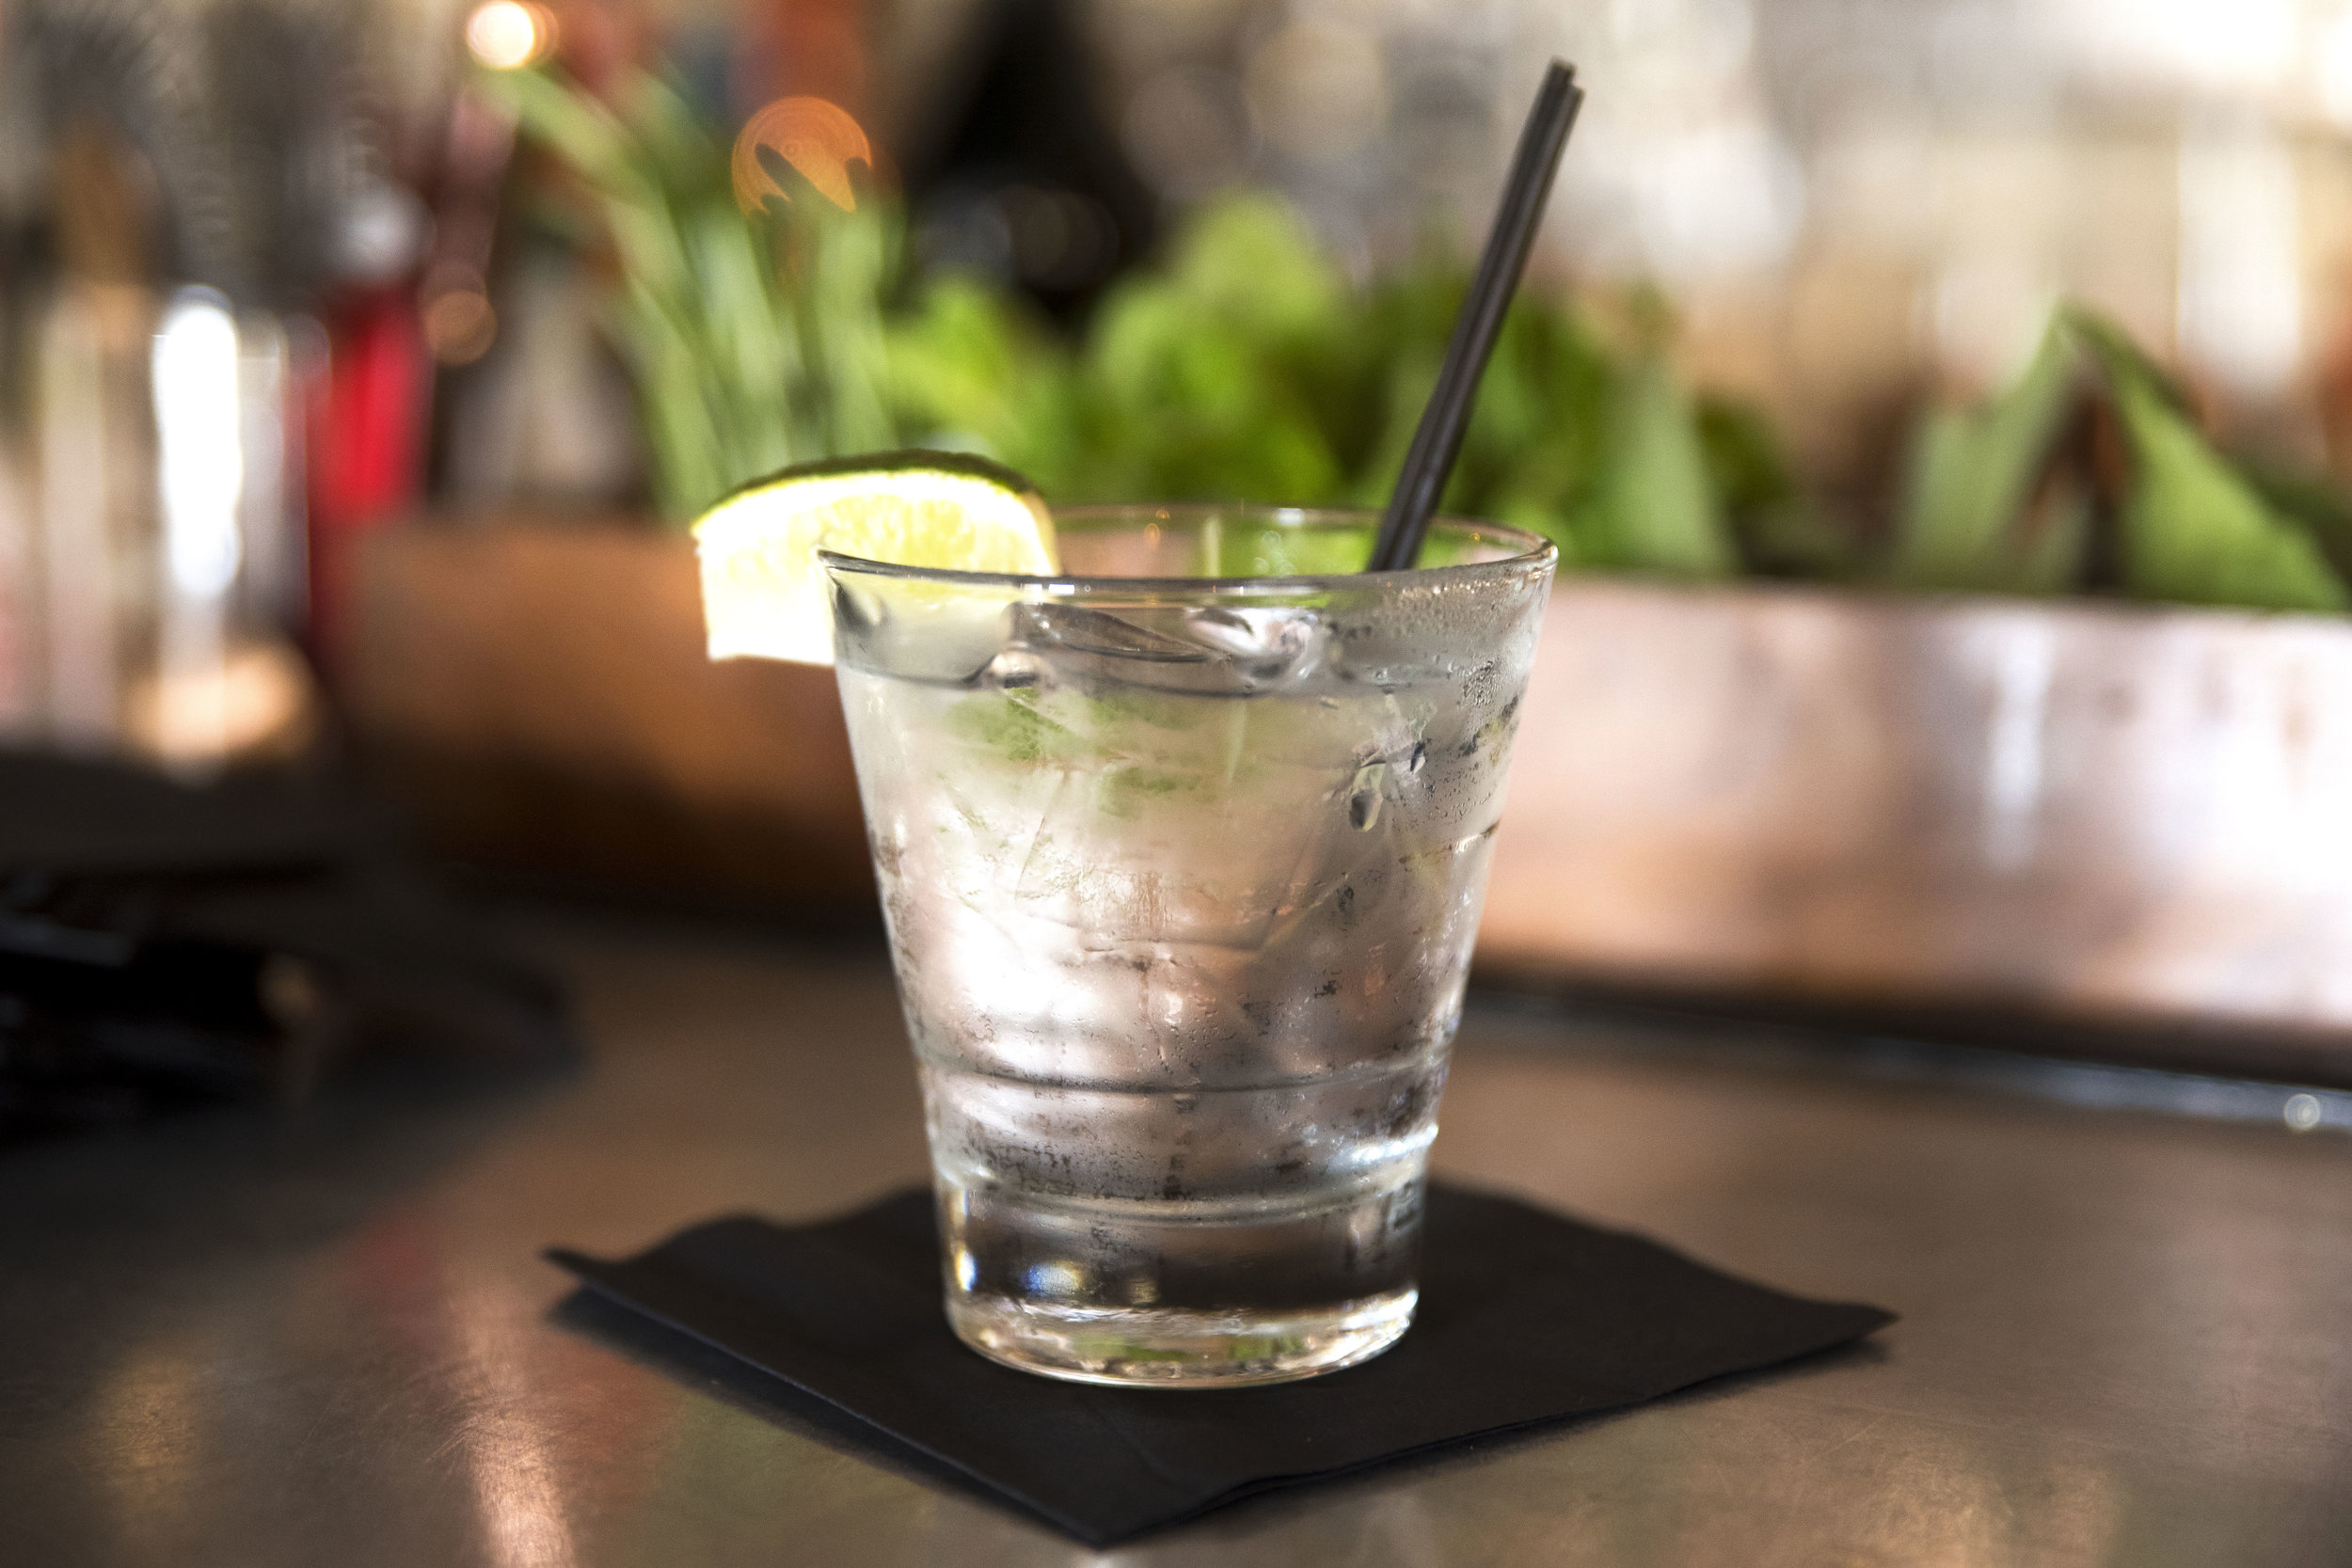 DRINK UP @ GRIND+GRAPE - For questions about our drinks you can ask your bartender or send us a message HERE.